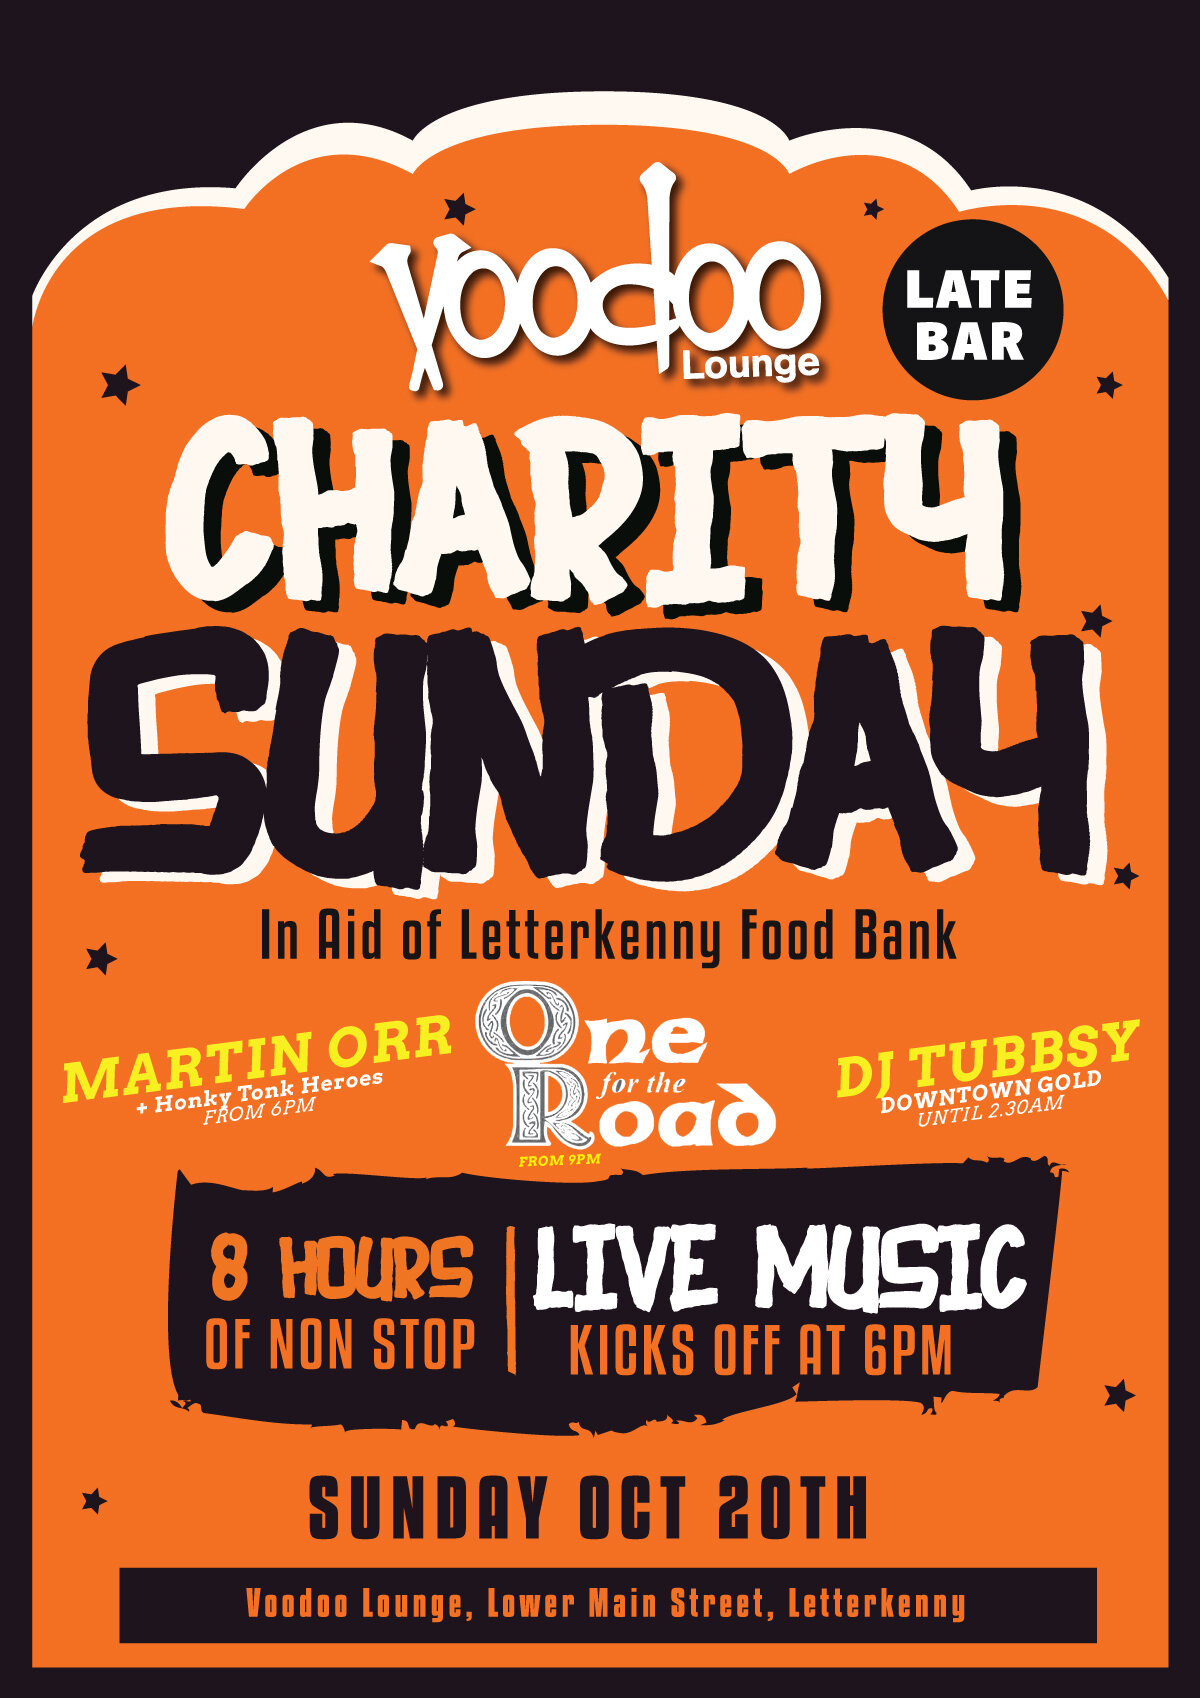 VOODOO-LOUNGE---charity-sunday-one-for-the-road-sun-oct-20-2019.jpg